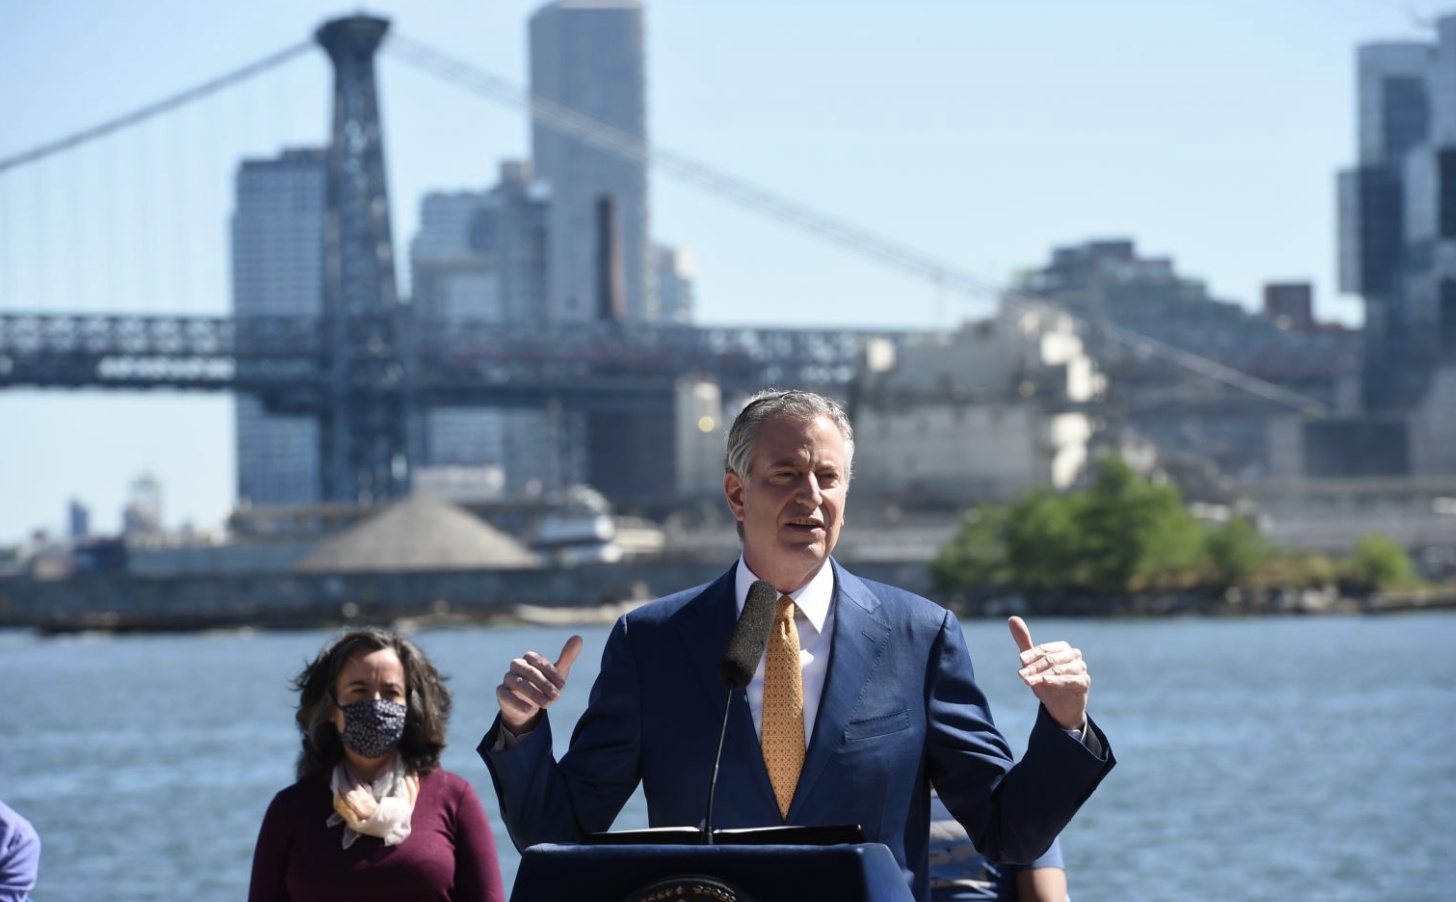 Twenty miles of new bus lanes, busways to be added to NYC streets